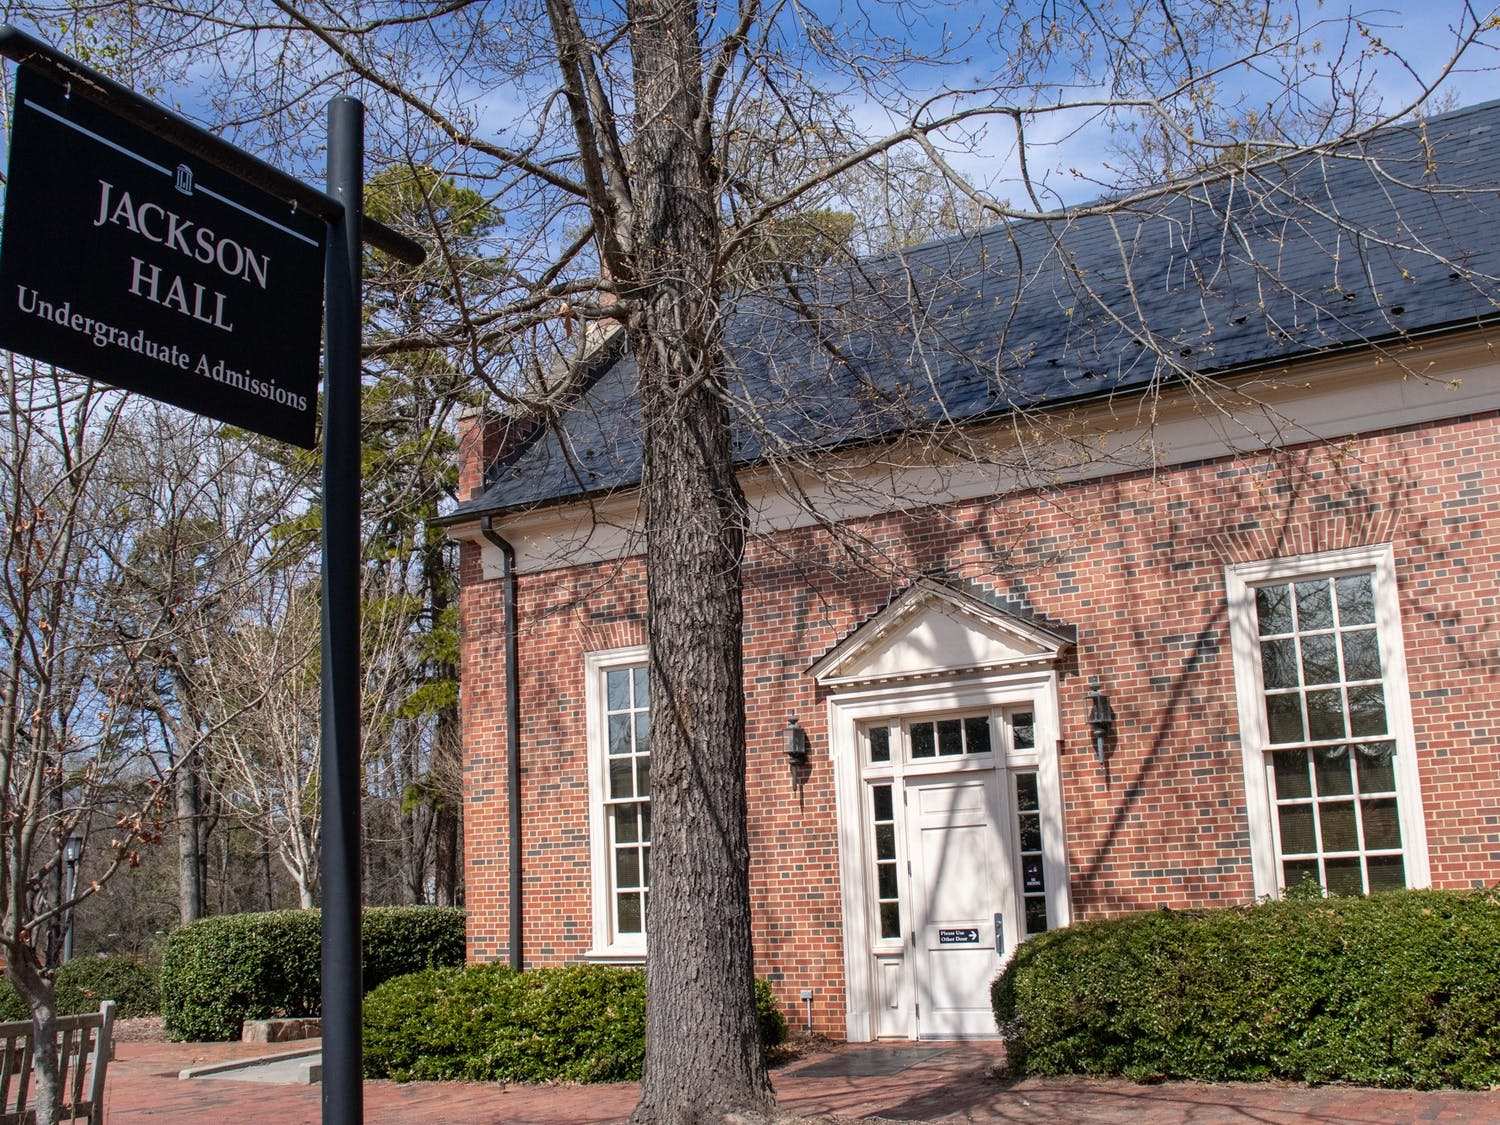 Jackson Hall which houses the Office of Undergraduate Admissions is pictures in Chapel Hill on March 20, 2021.